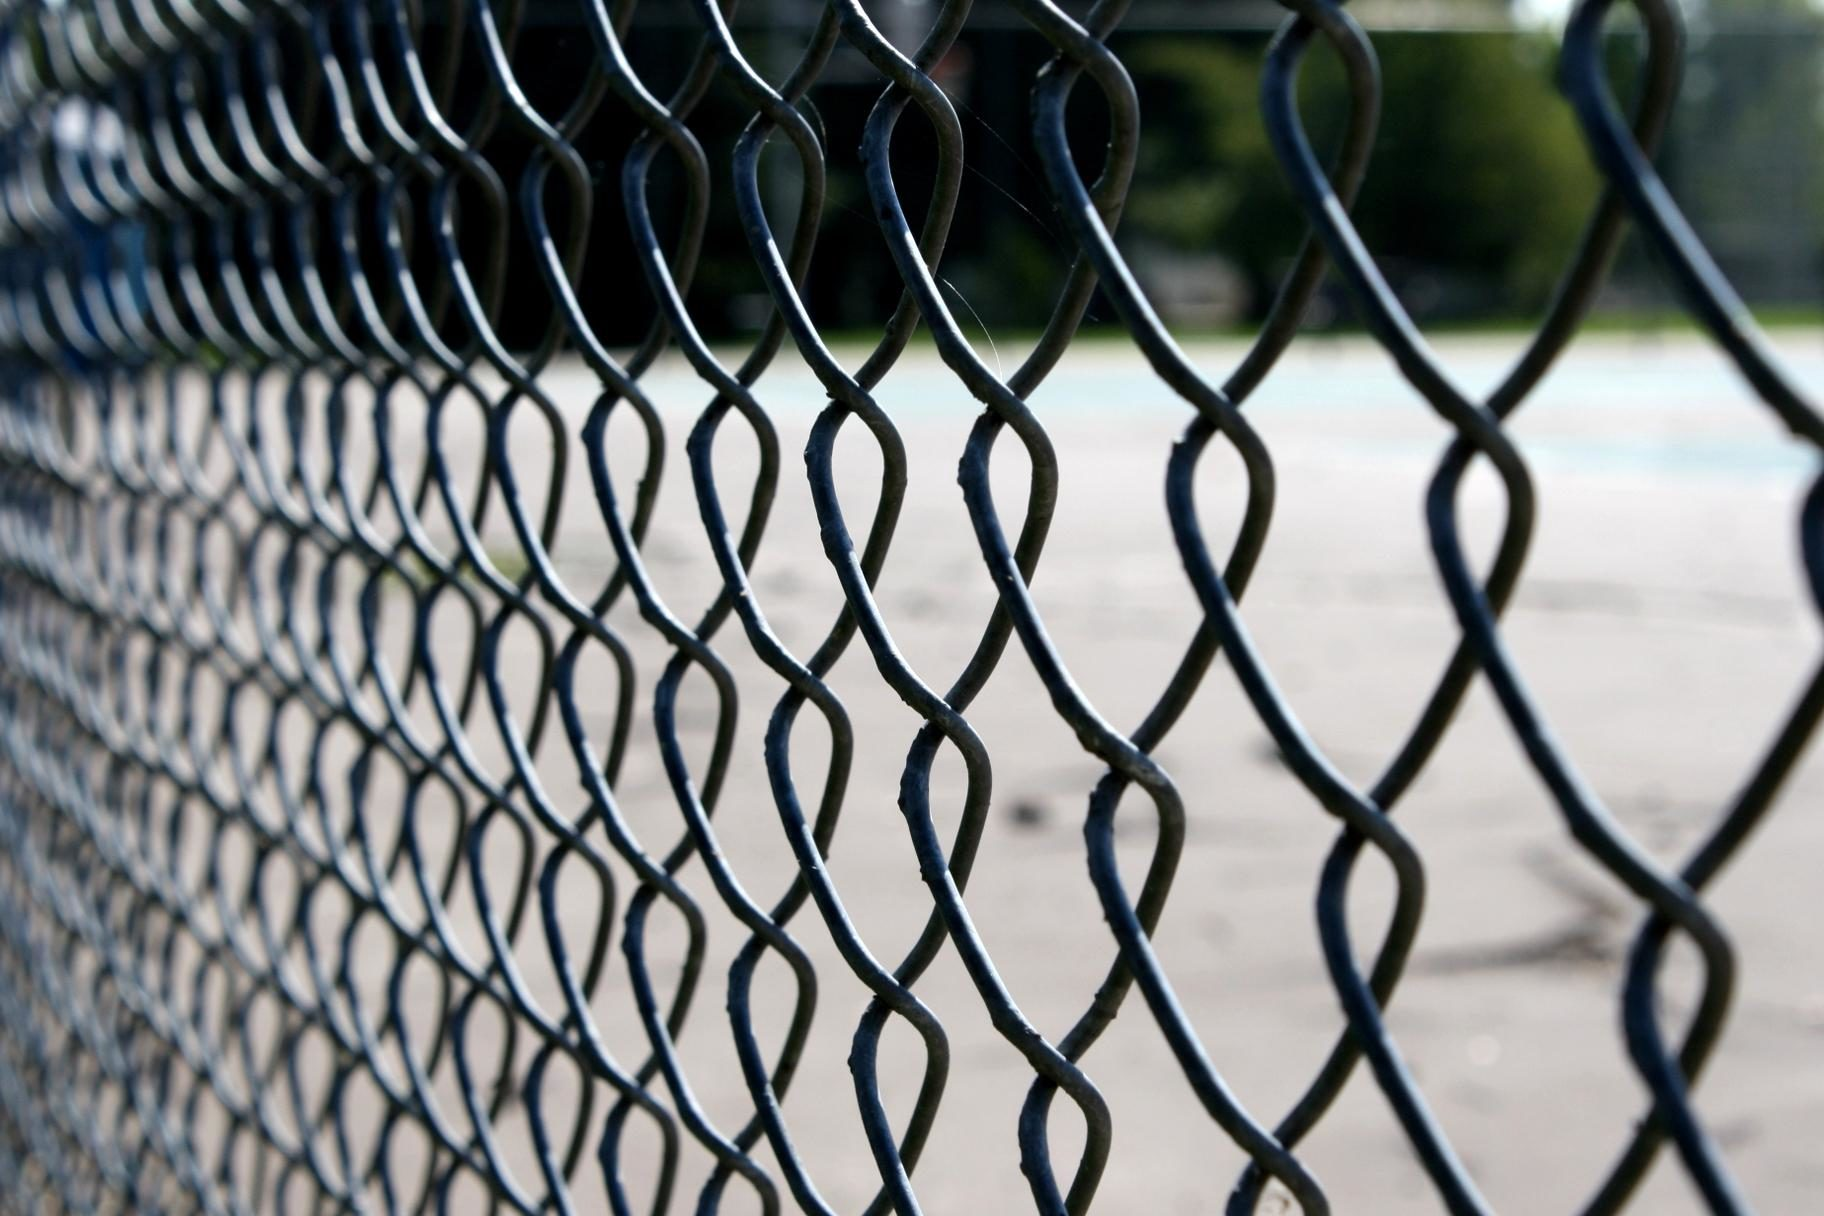 Free picture: metal wire fence